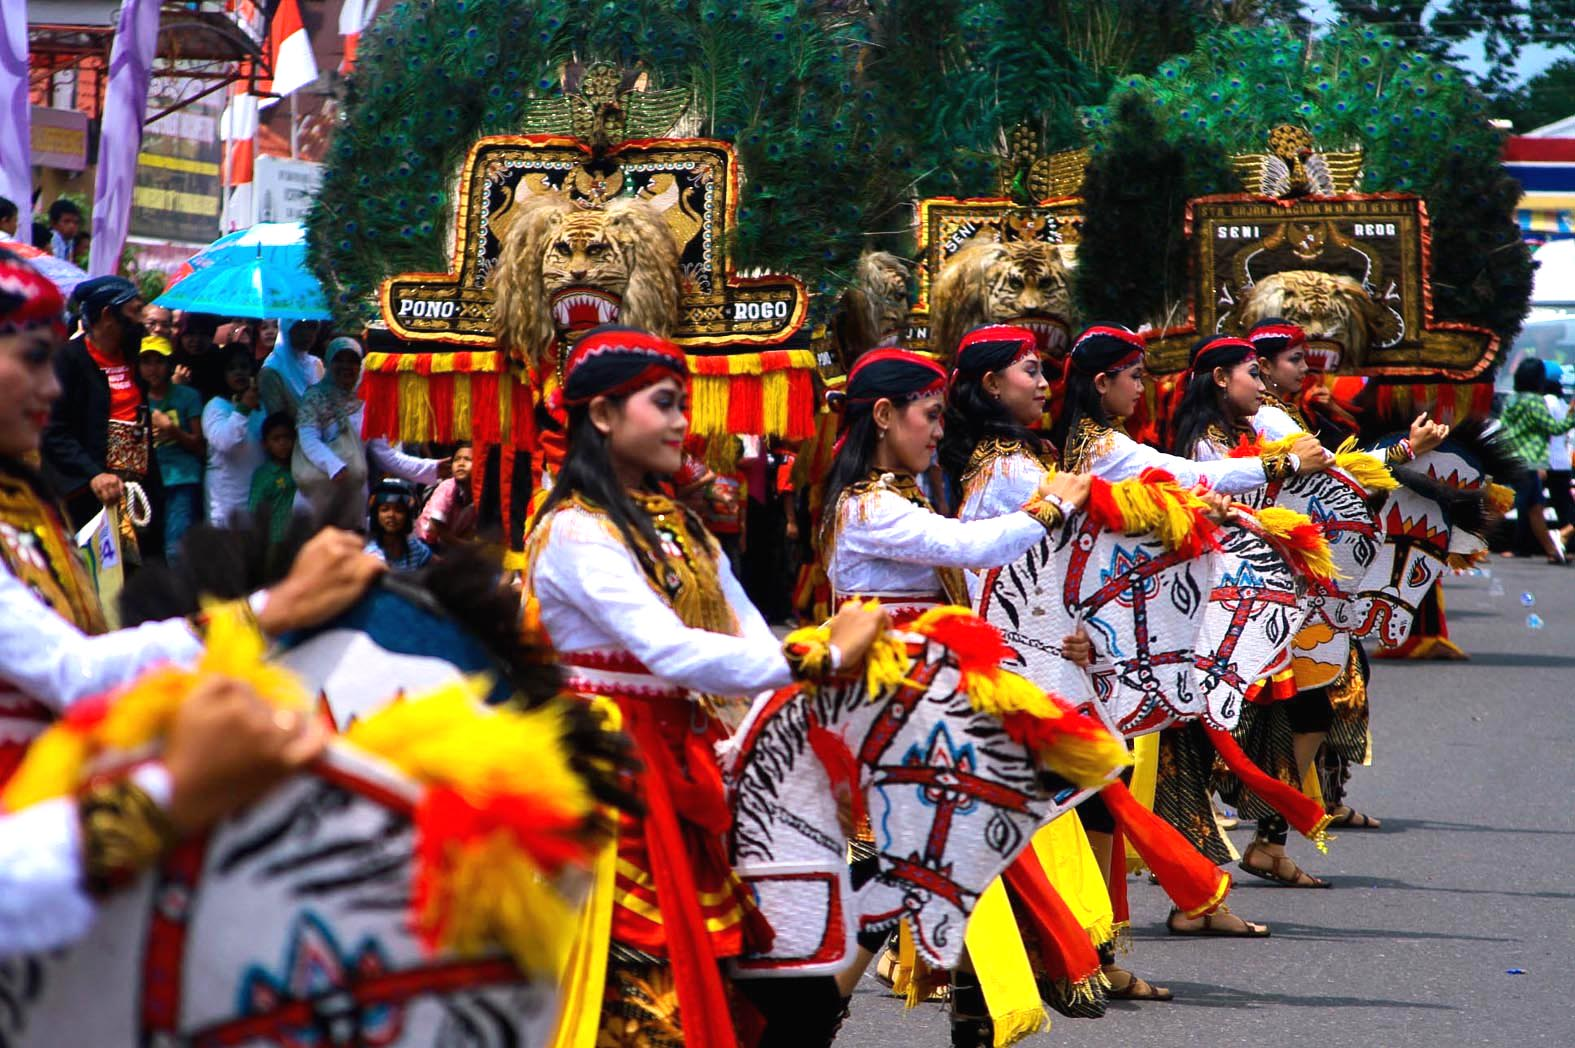 Ponorogo Indonesia  city images : Reog Ponorogo Indonesian Culture and Tradition | Travel Guide Ideas